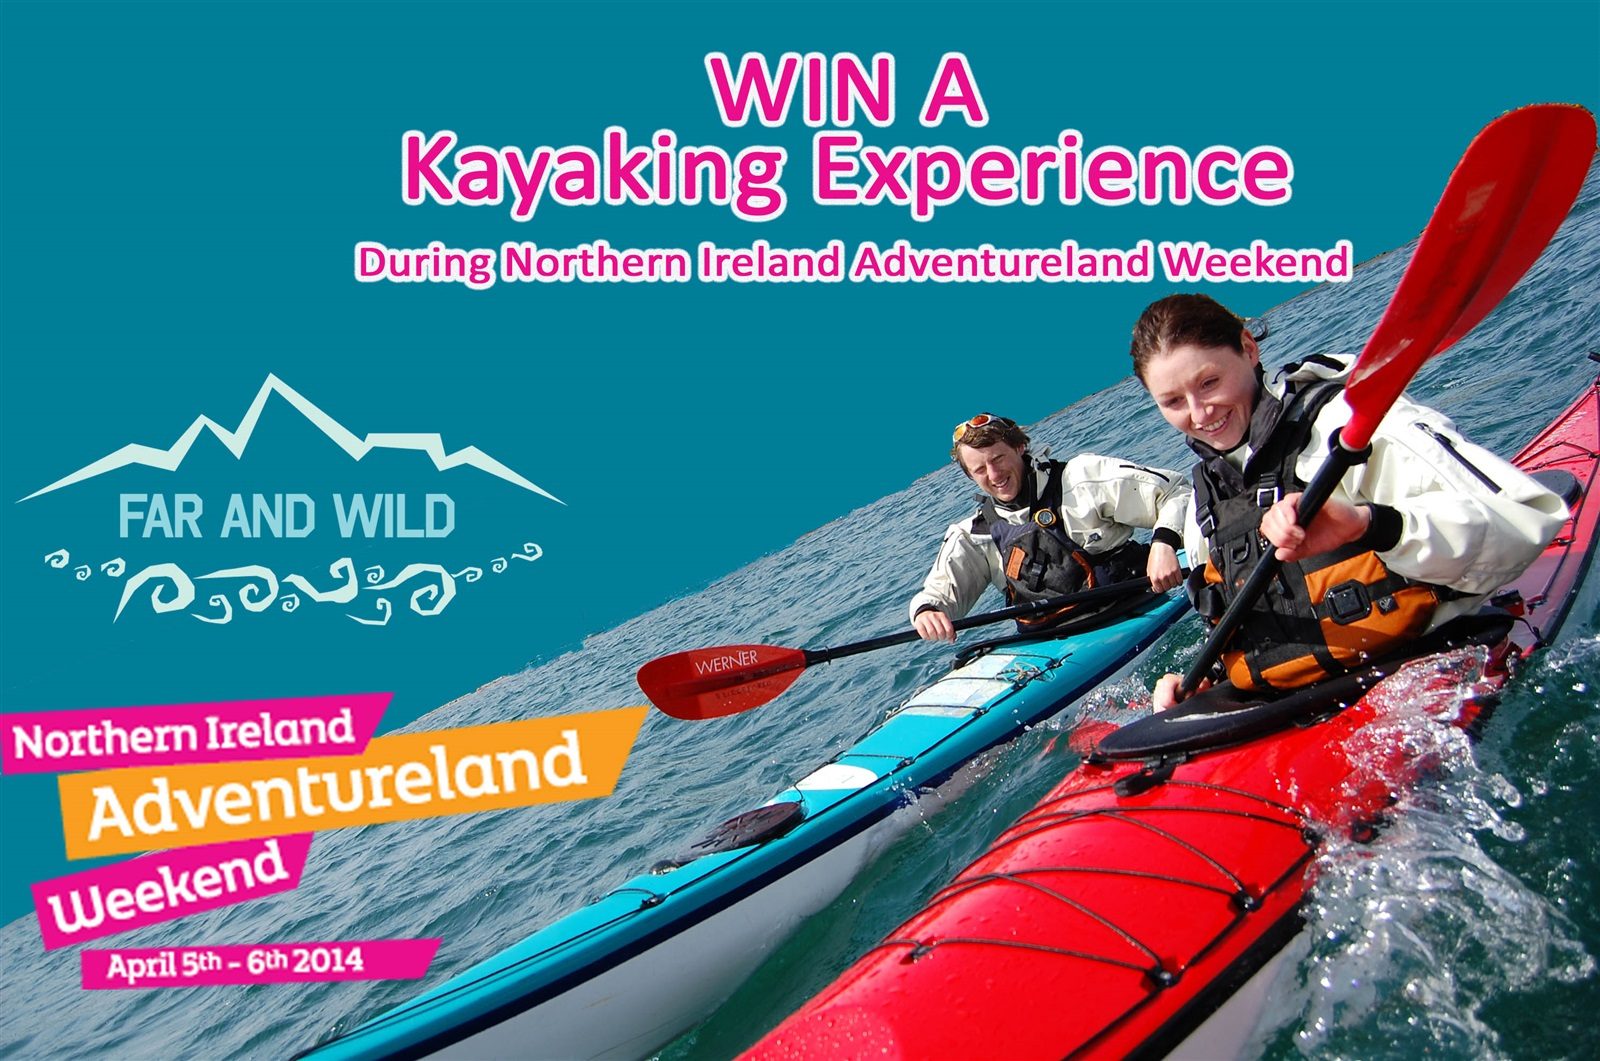 Win a Kayaking Experience during Northern Ireland Adventureland Weekend!